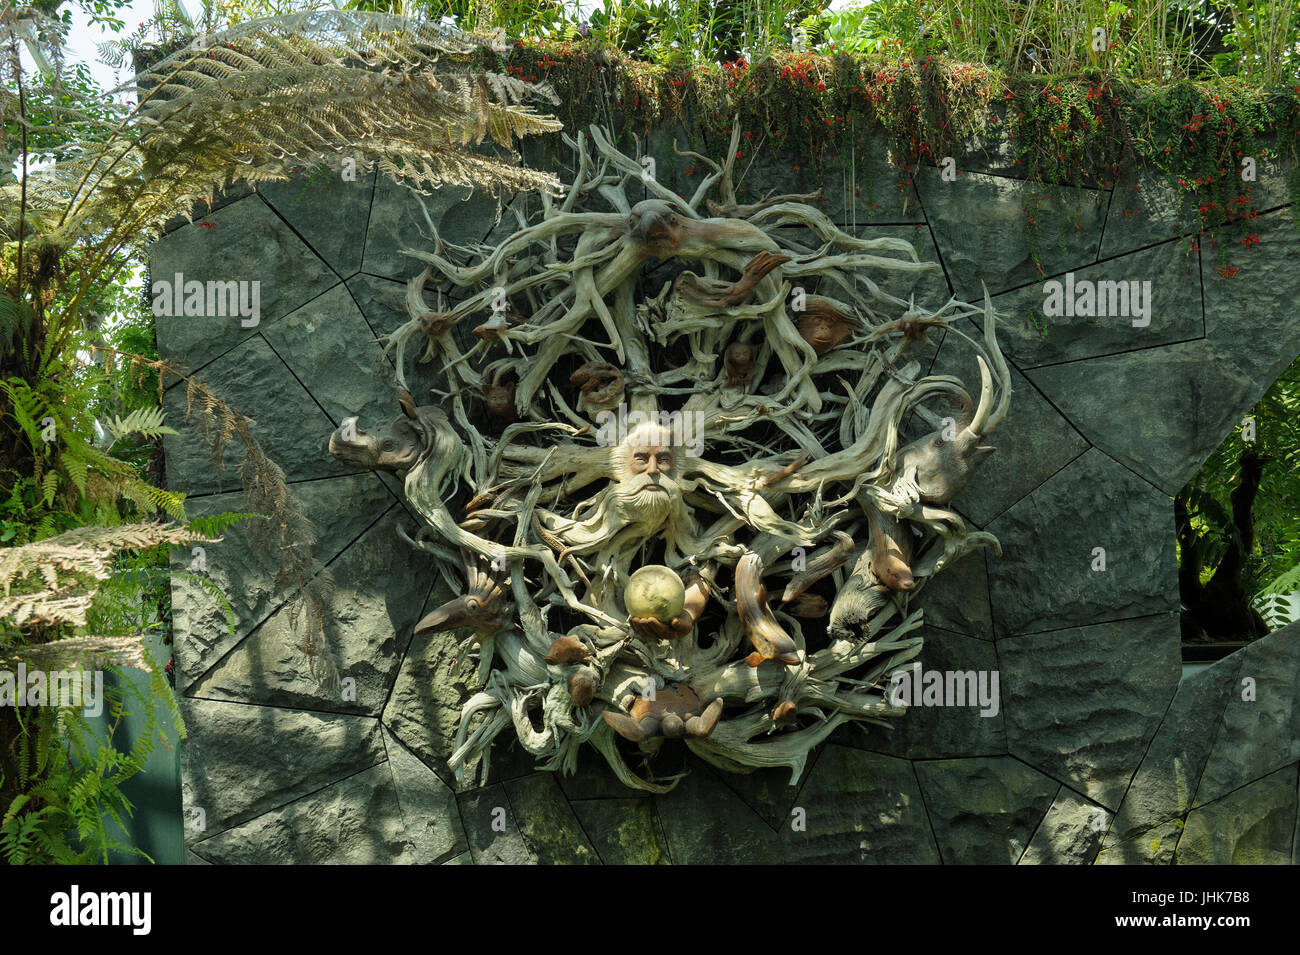 Wooden sculpture/carving in Gardens by the Bay, Singapore Stock Photo